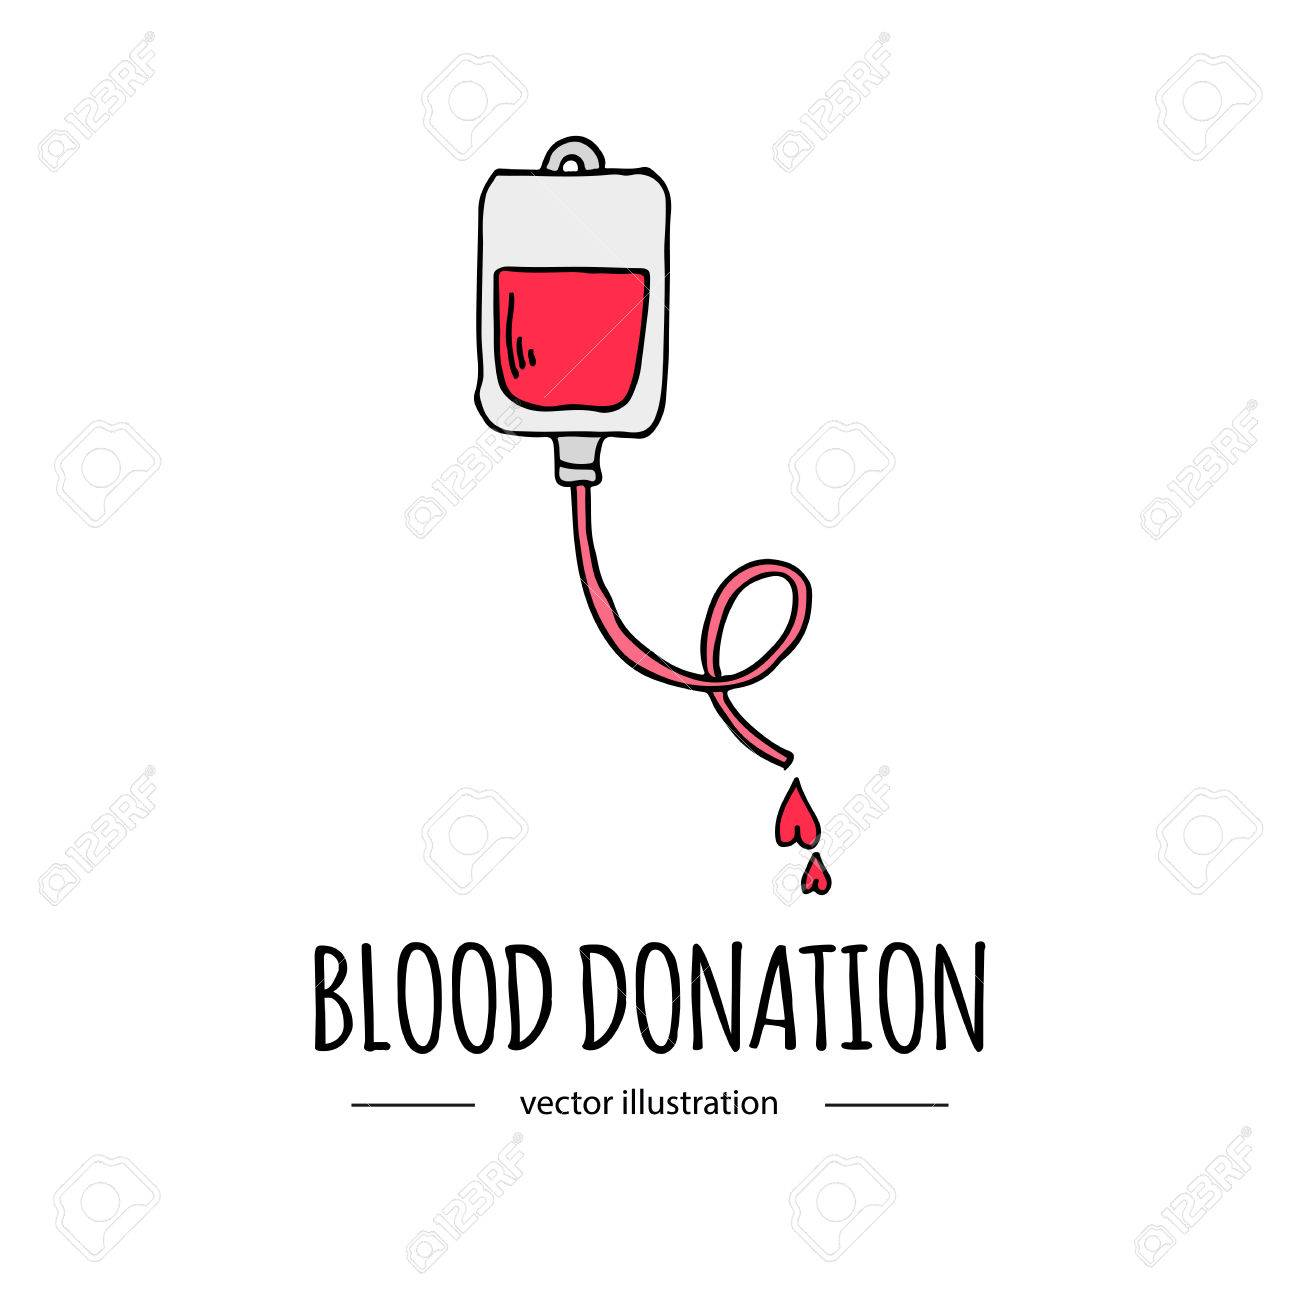 Hand Drawn Cartoon Style Doodle Blood Donation Bag With Tube